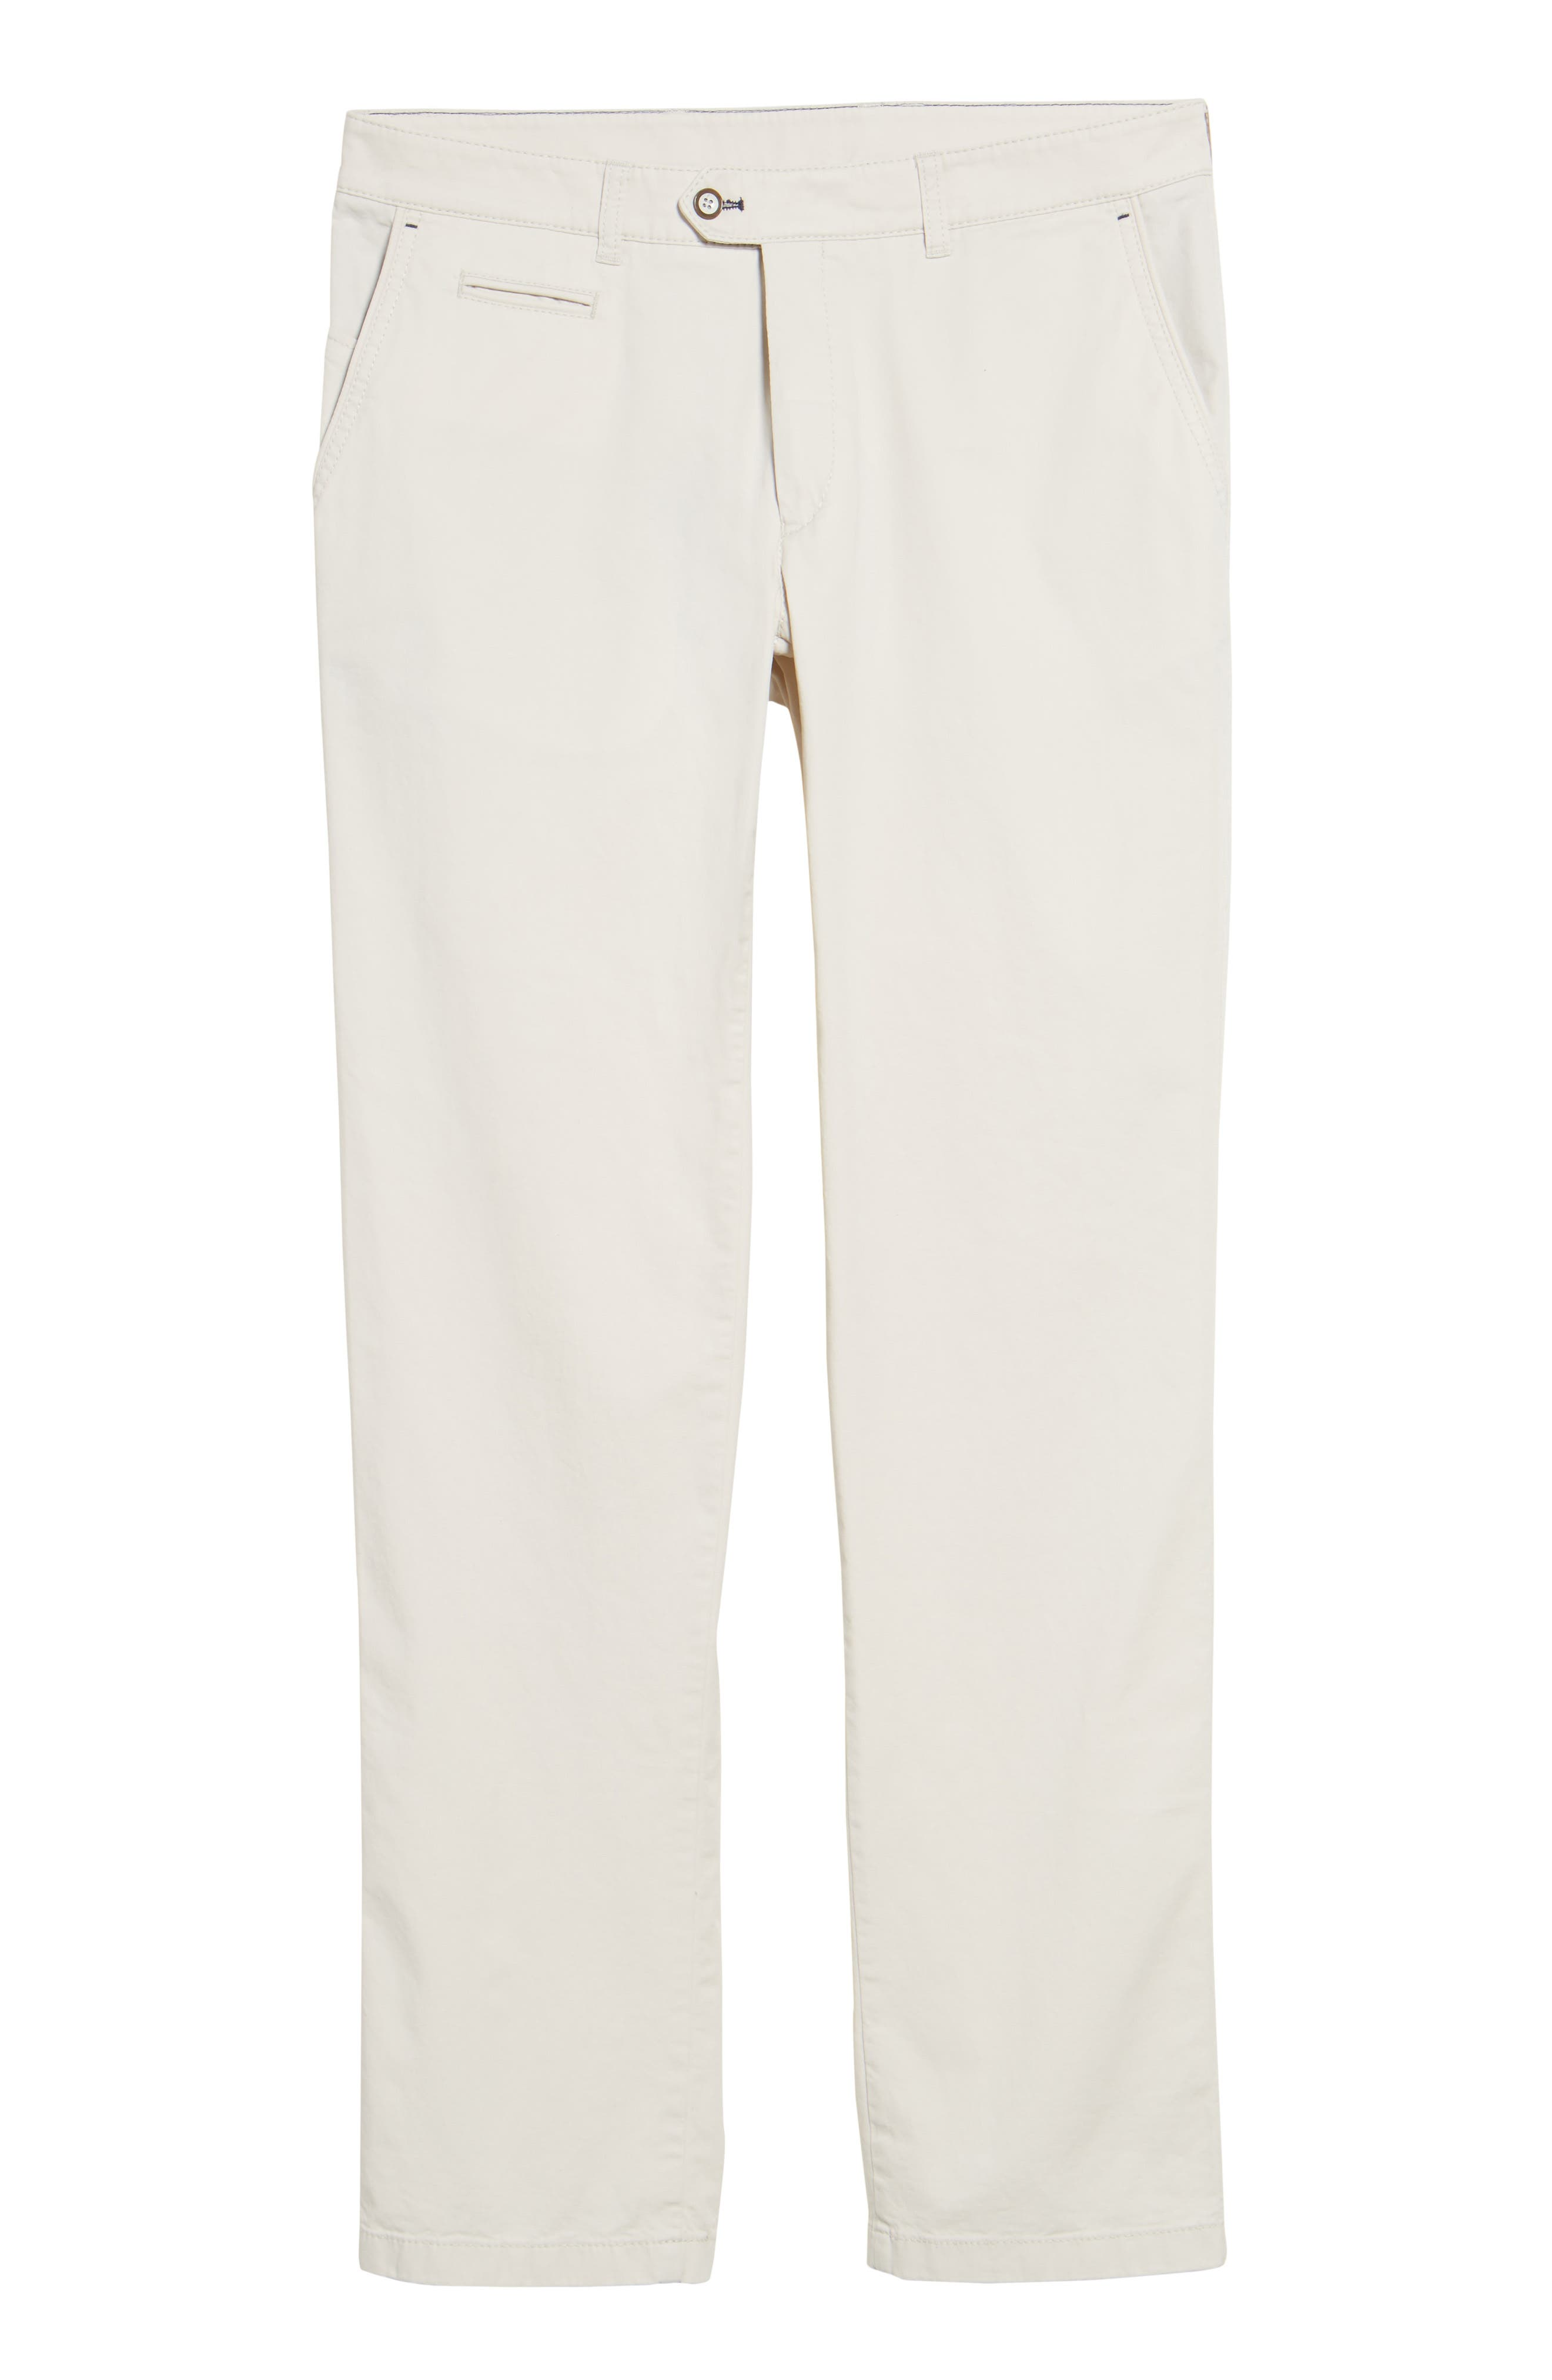 Everest Flat Front Chinos,                             Alternate thumbnail 11, color,